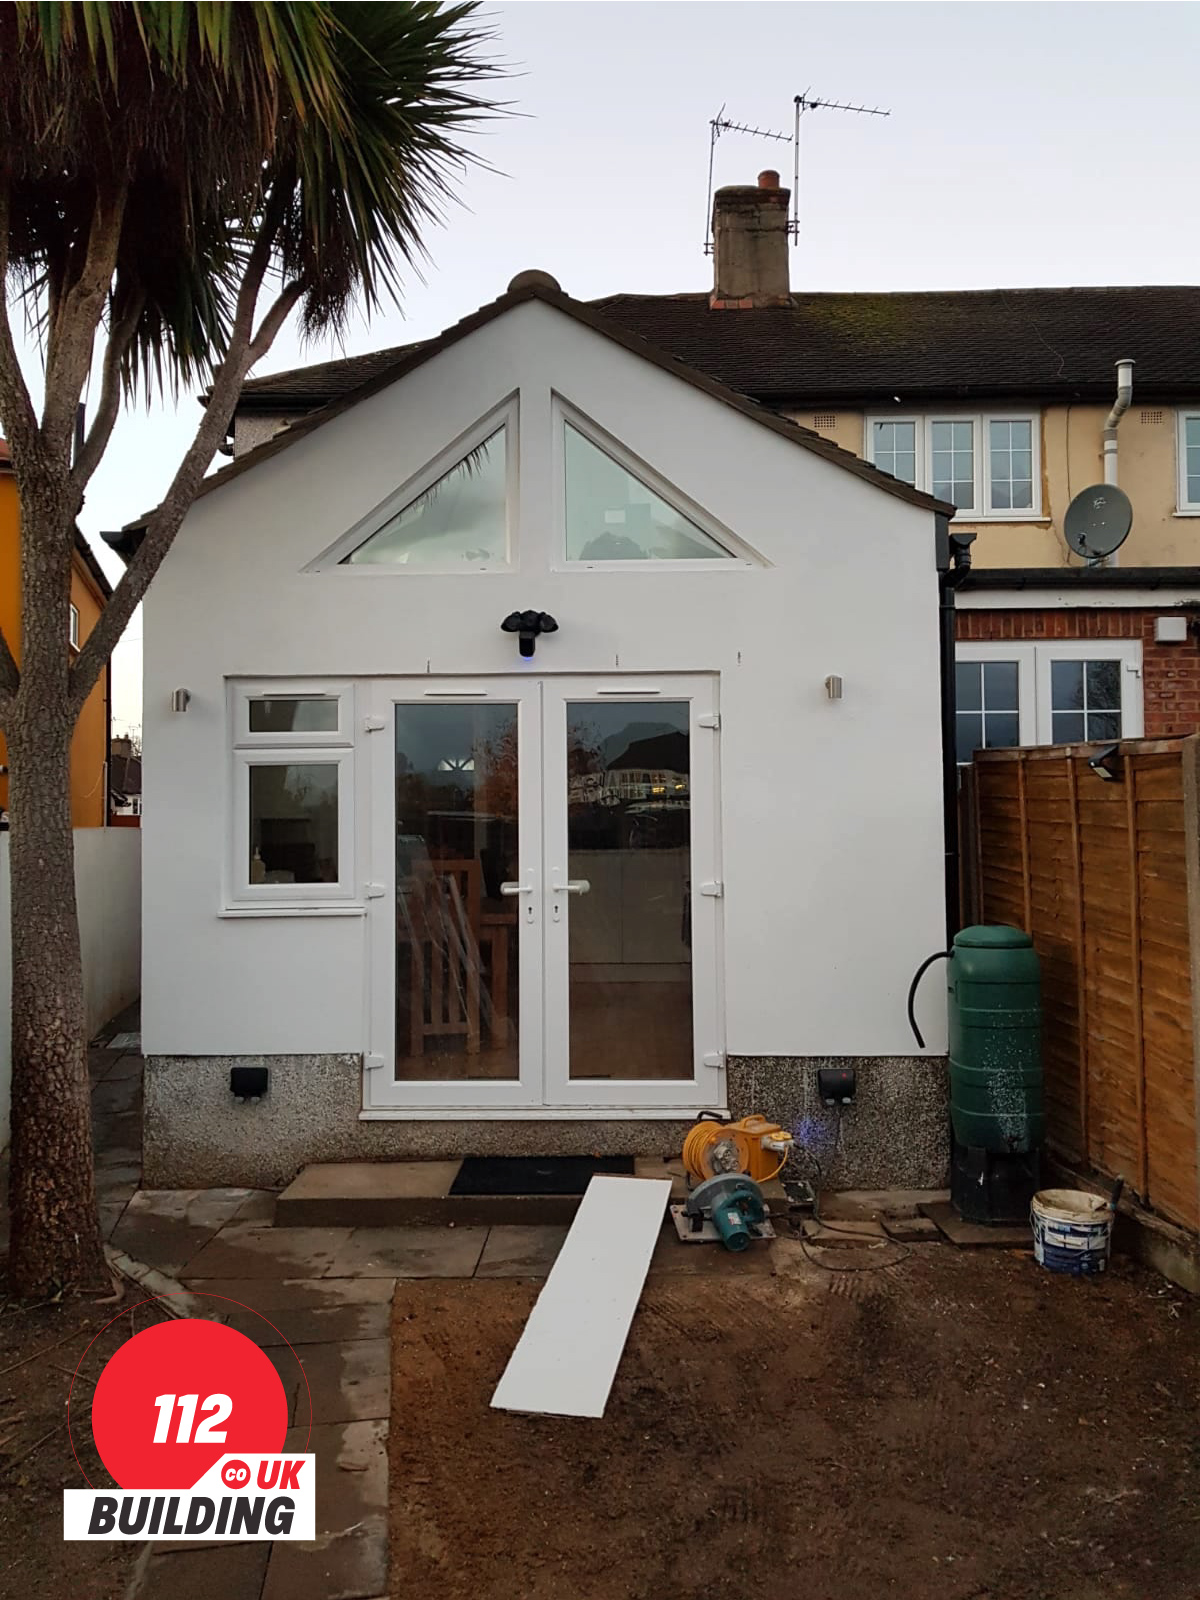 House extension in Dunton Green